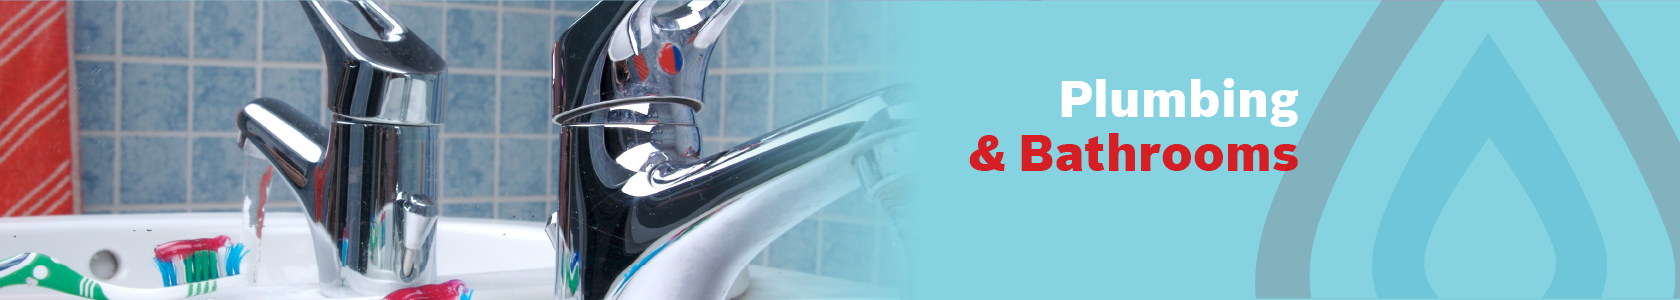 Plumbing Services Stirling